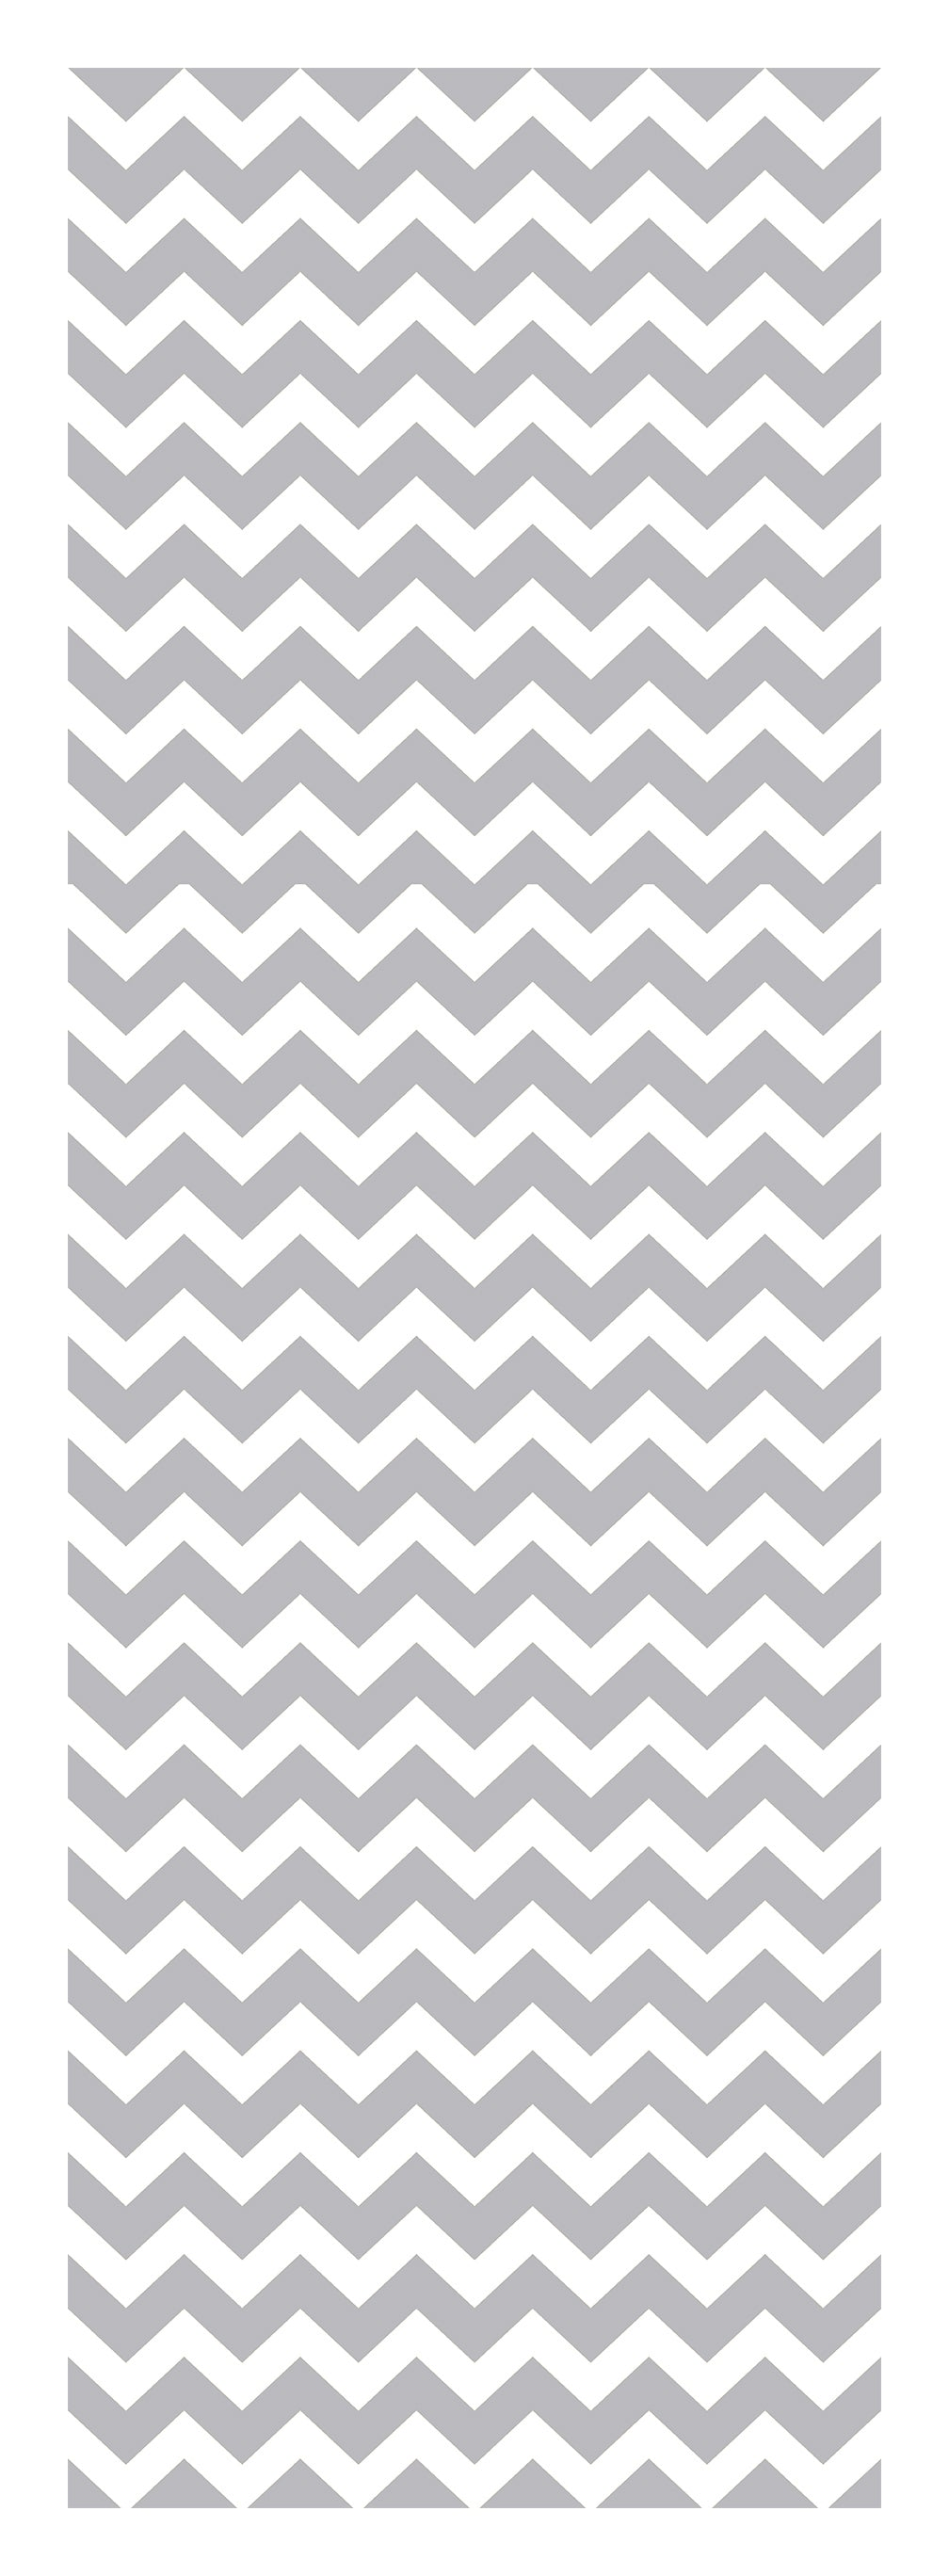 Back to School Deluxe Magnetic Locker Wallpaper in Chevron Pattern